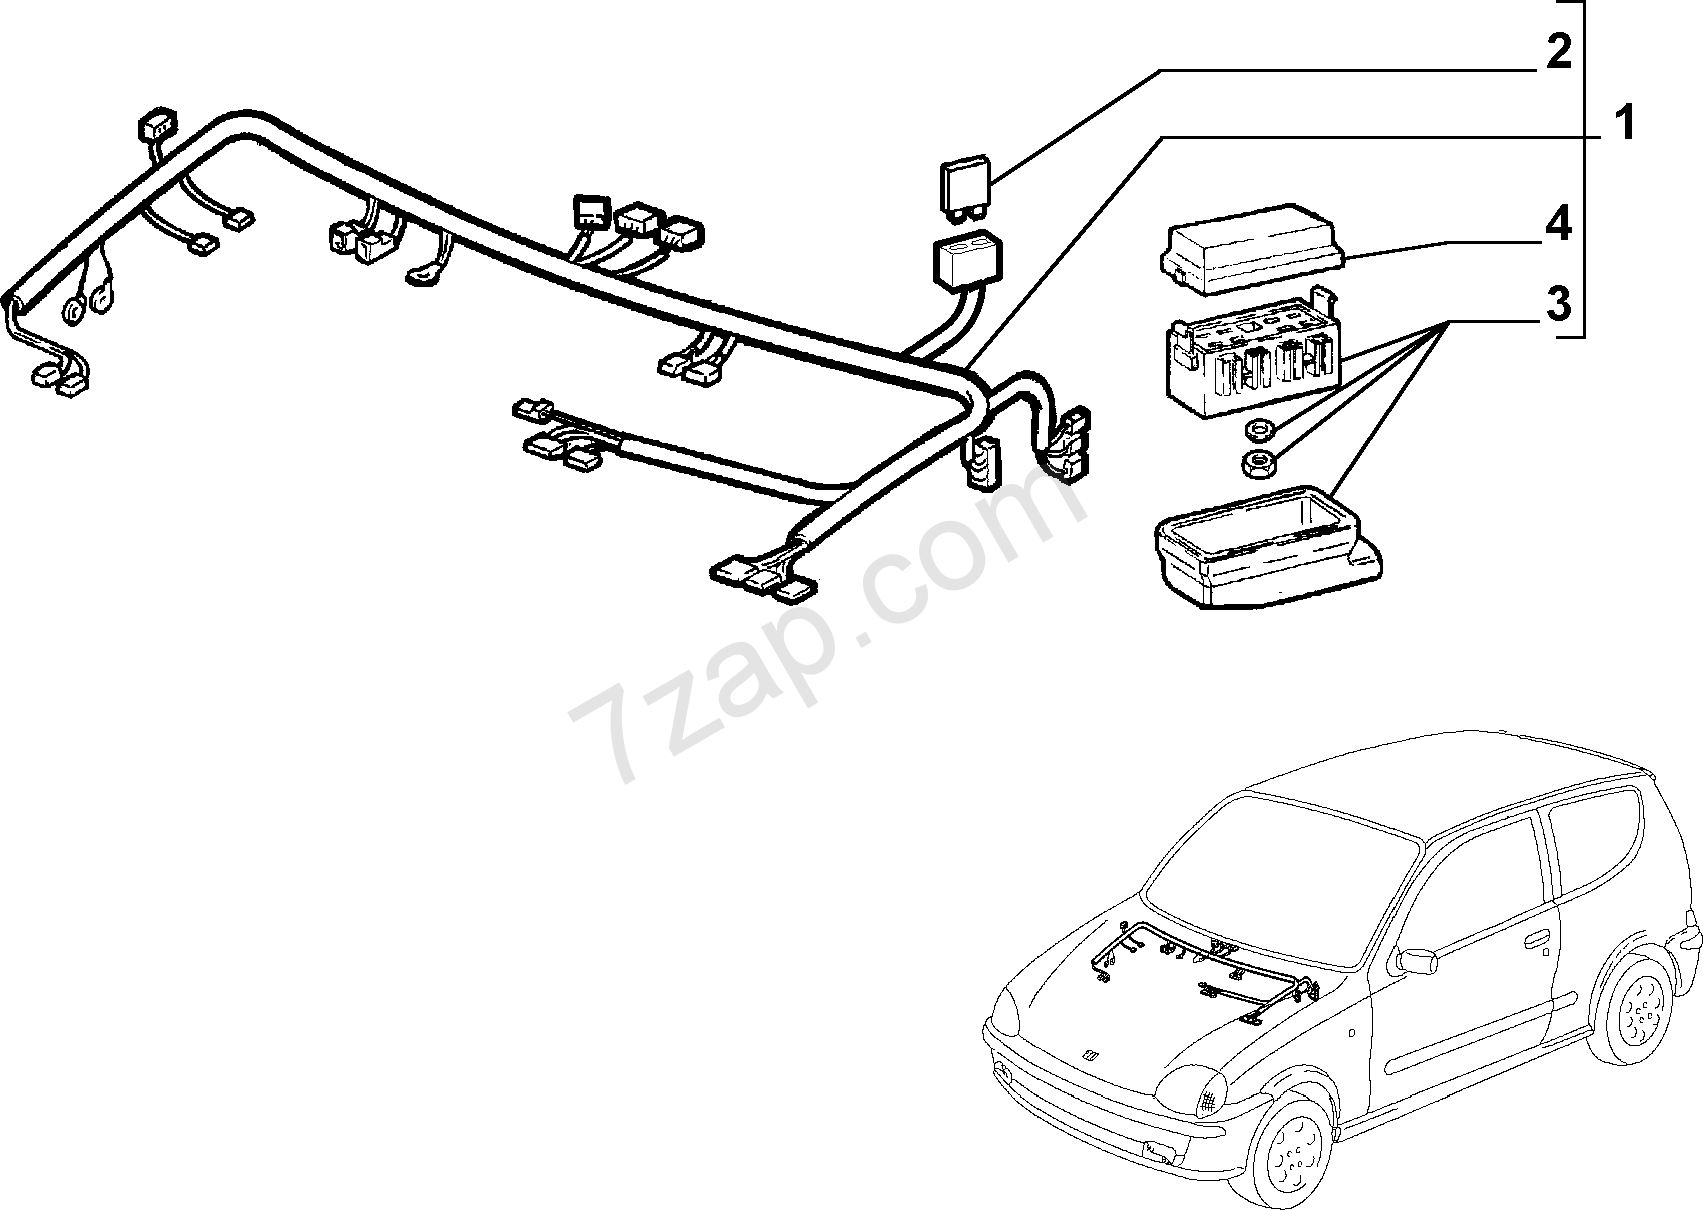 Fuse Box On Fiat Seicento Wiring Library Marcus Miller Fender Jazz B Diagram Cable Harness Front 1998 2010